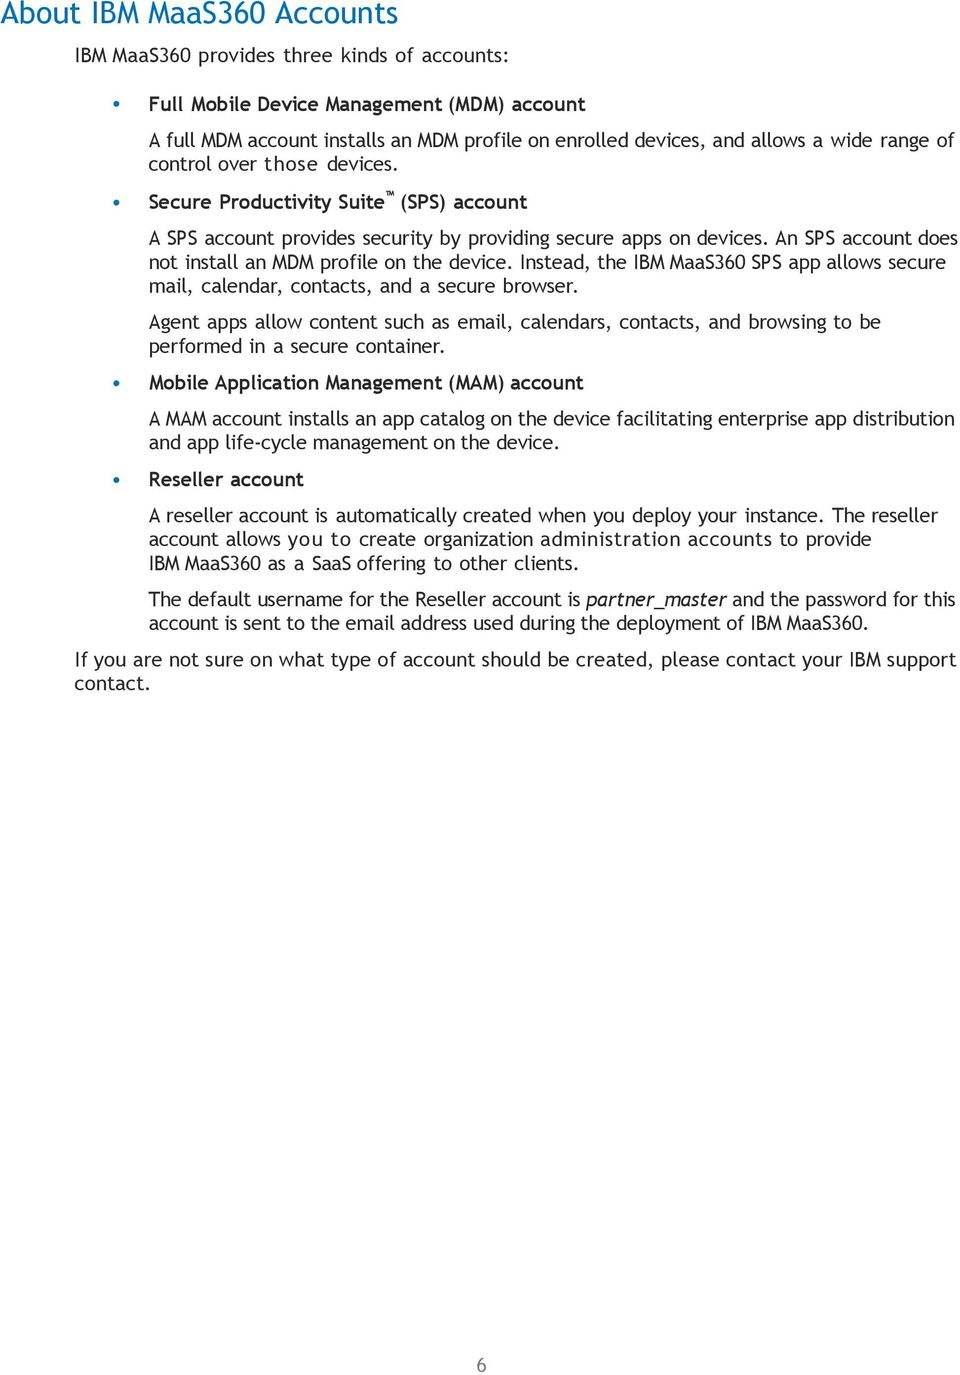 IBM MobileFirst Protect (MaaS360) On-Premises Configuration Guide